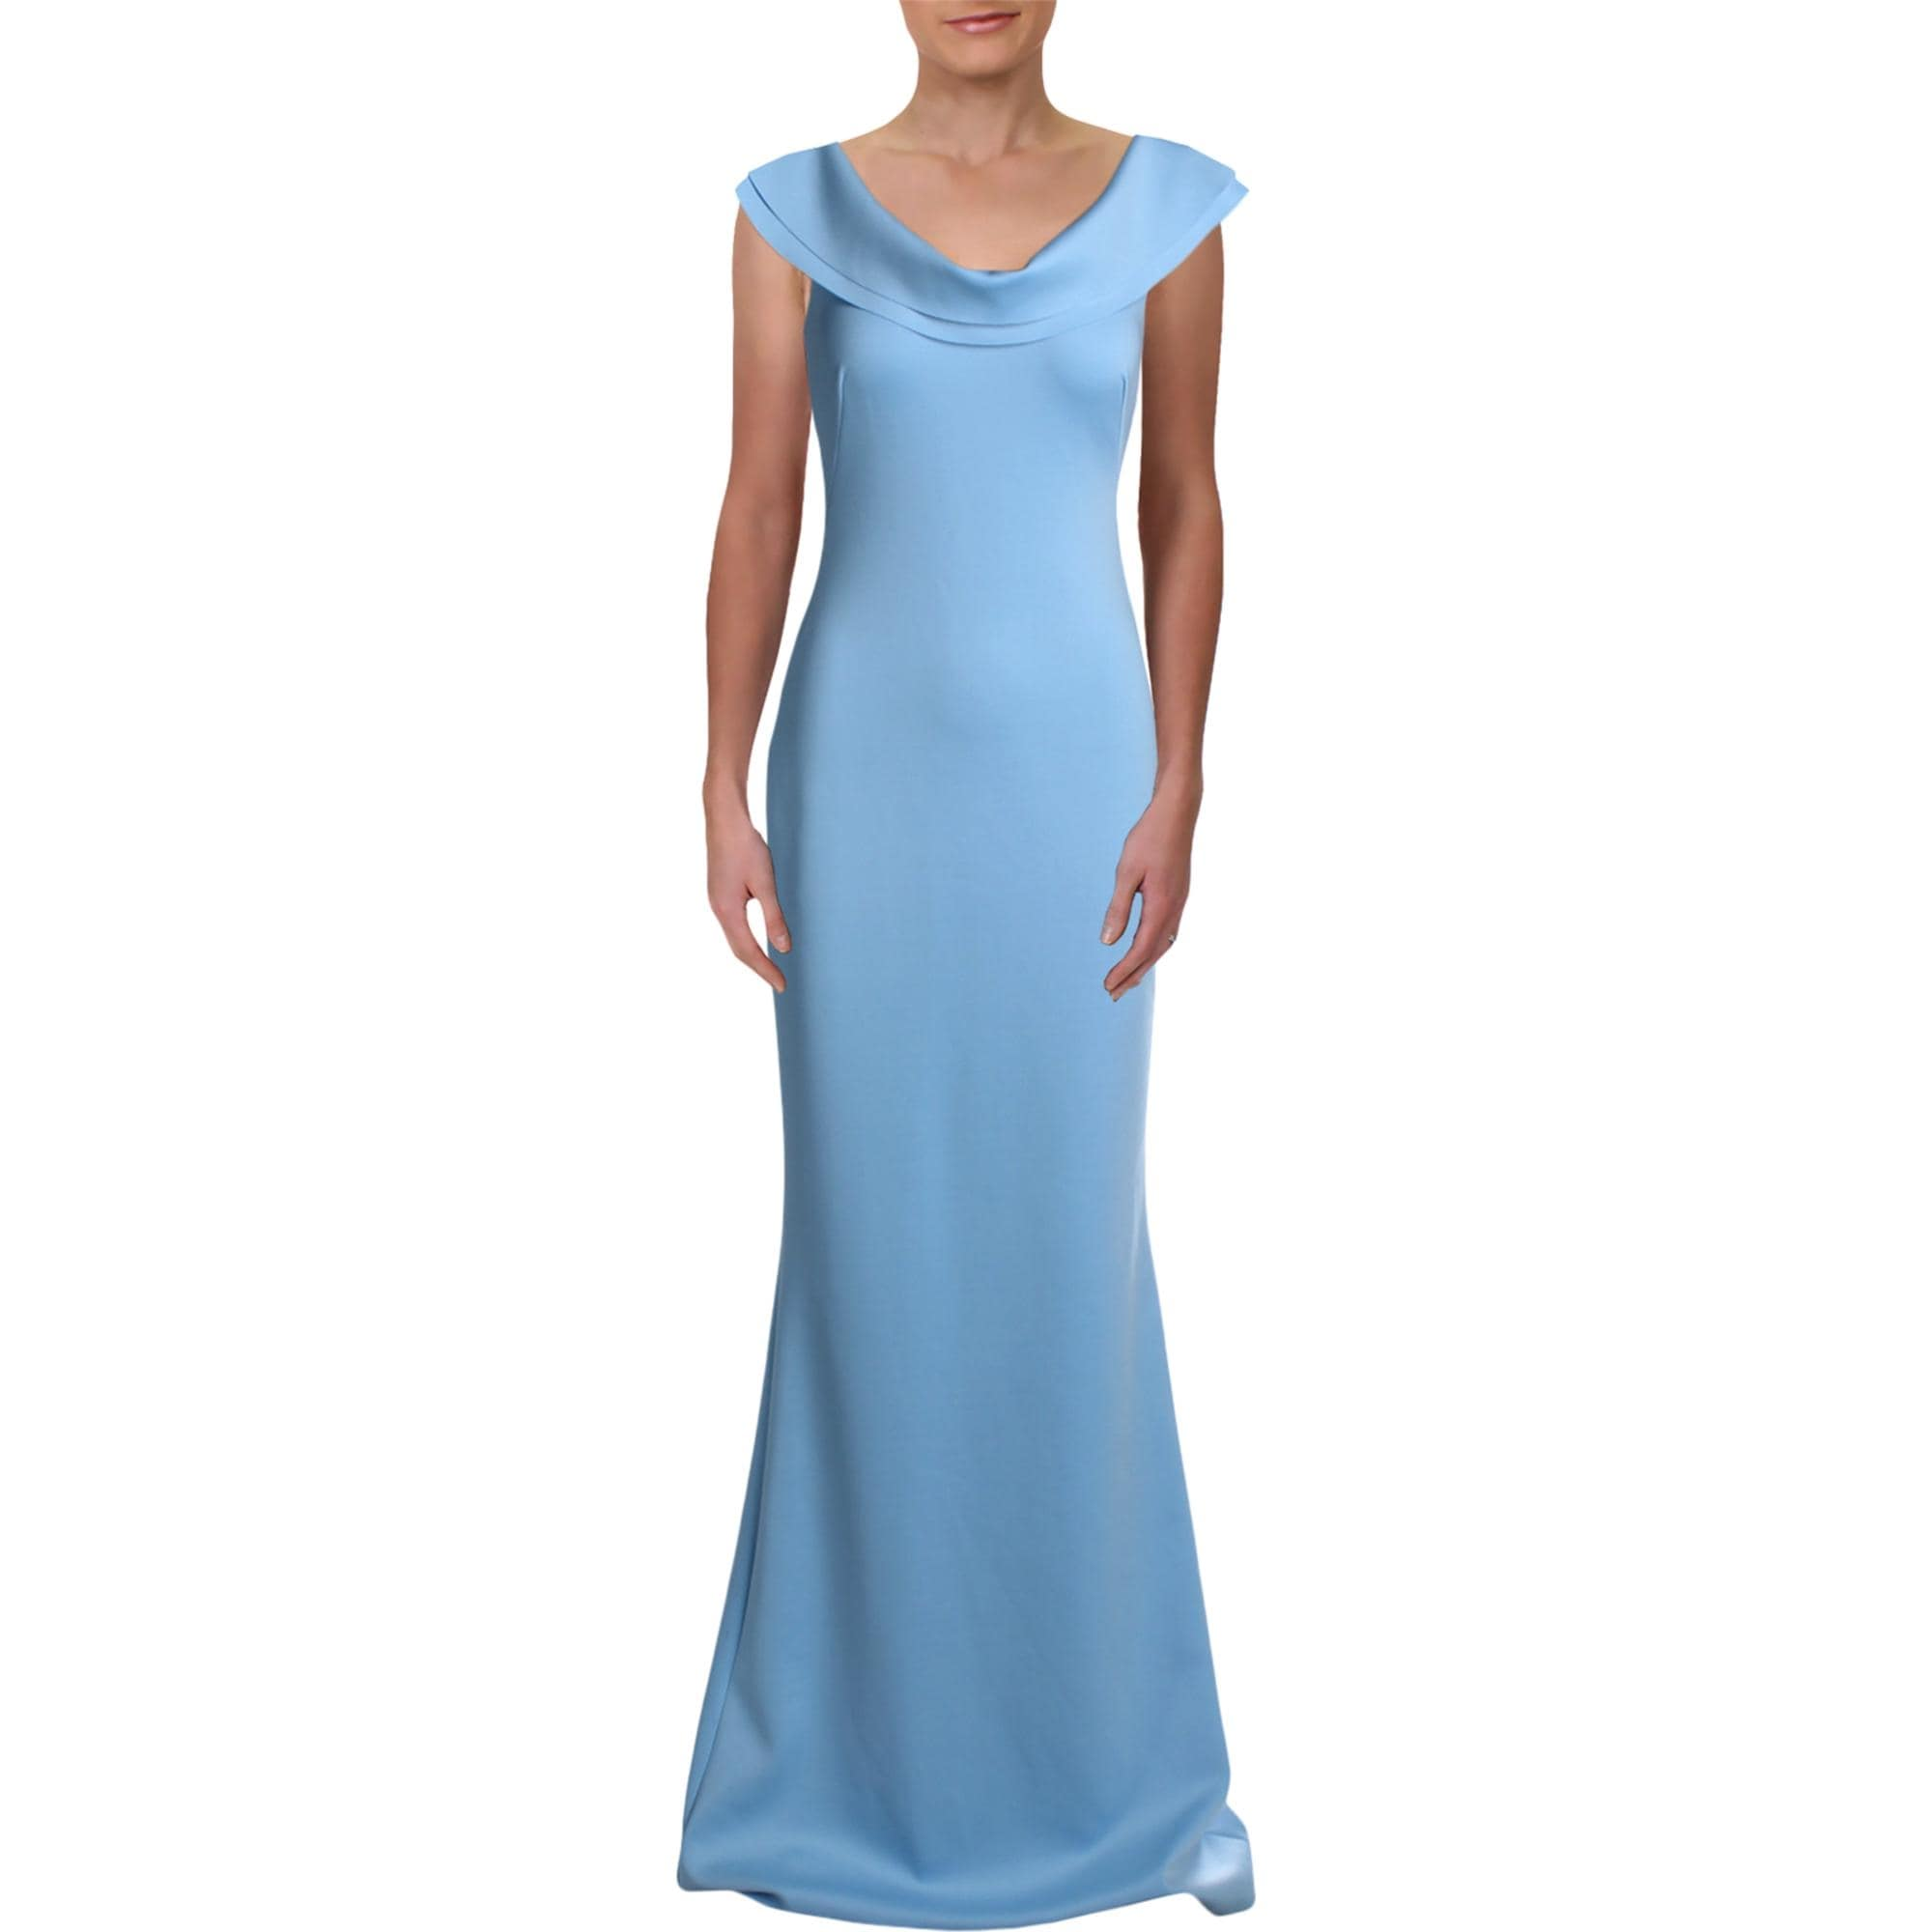 Black Halo Womens Patricia Evening Dress Off The Shoulder Full Length Blue Overstock 31589643